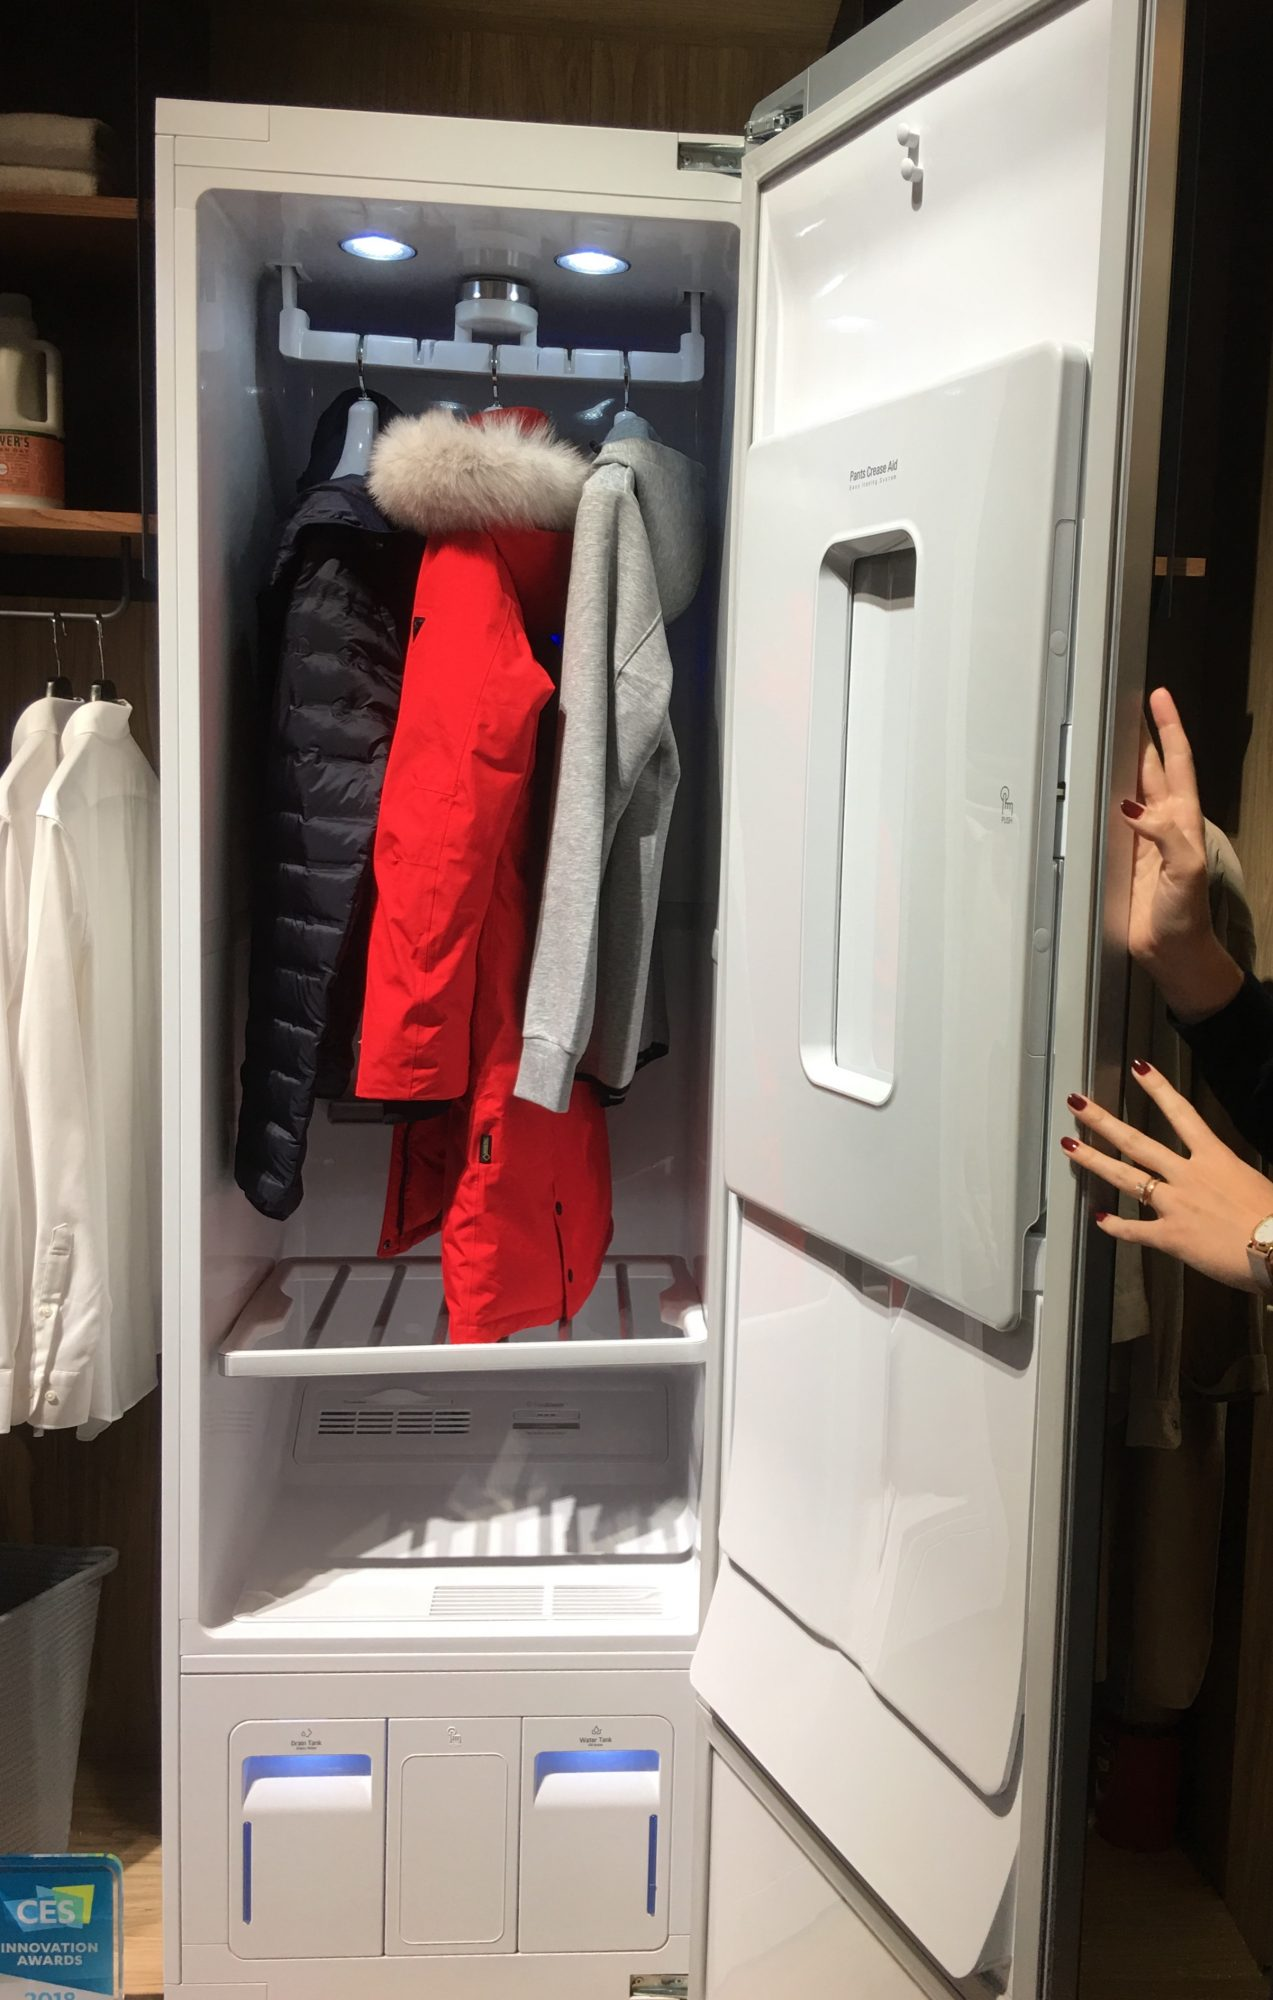 lg at dryer paramus showroom in and pin steam loading tromm front pinterest jersey washer closet pirch styler turbowash new